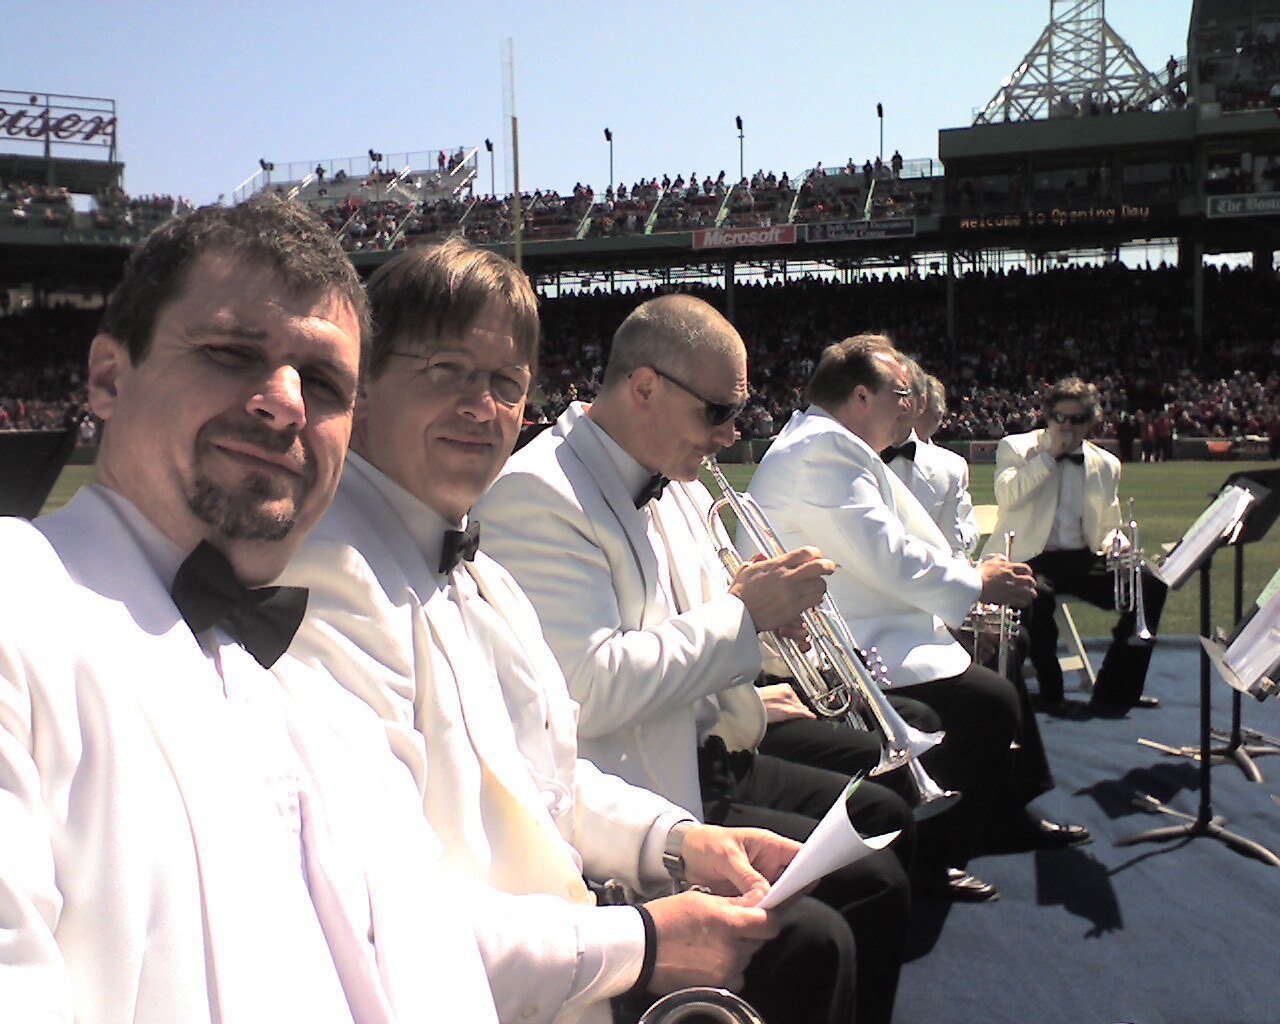 Boston Pops Brass Ensemble at Fenway Park with  Bruce Hall,  Terry Everson,  Jon Allmark, Dana Russian, Greg Whitacre,  and Dana Oakes